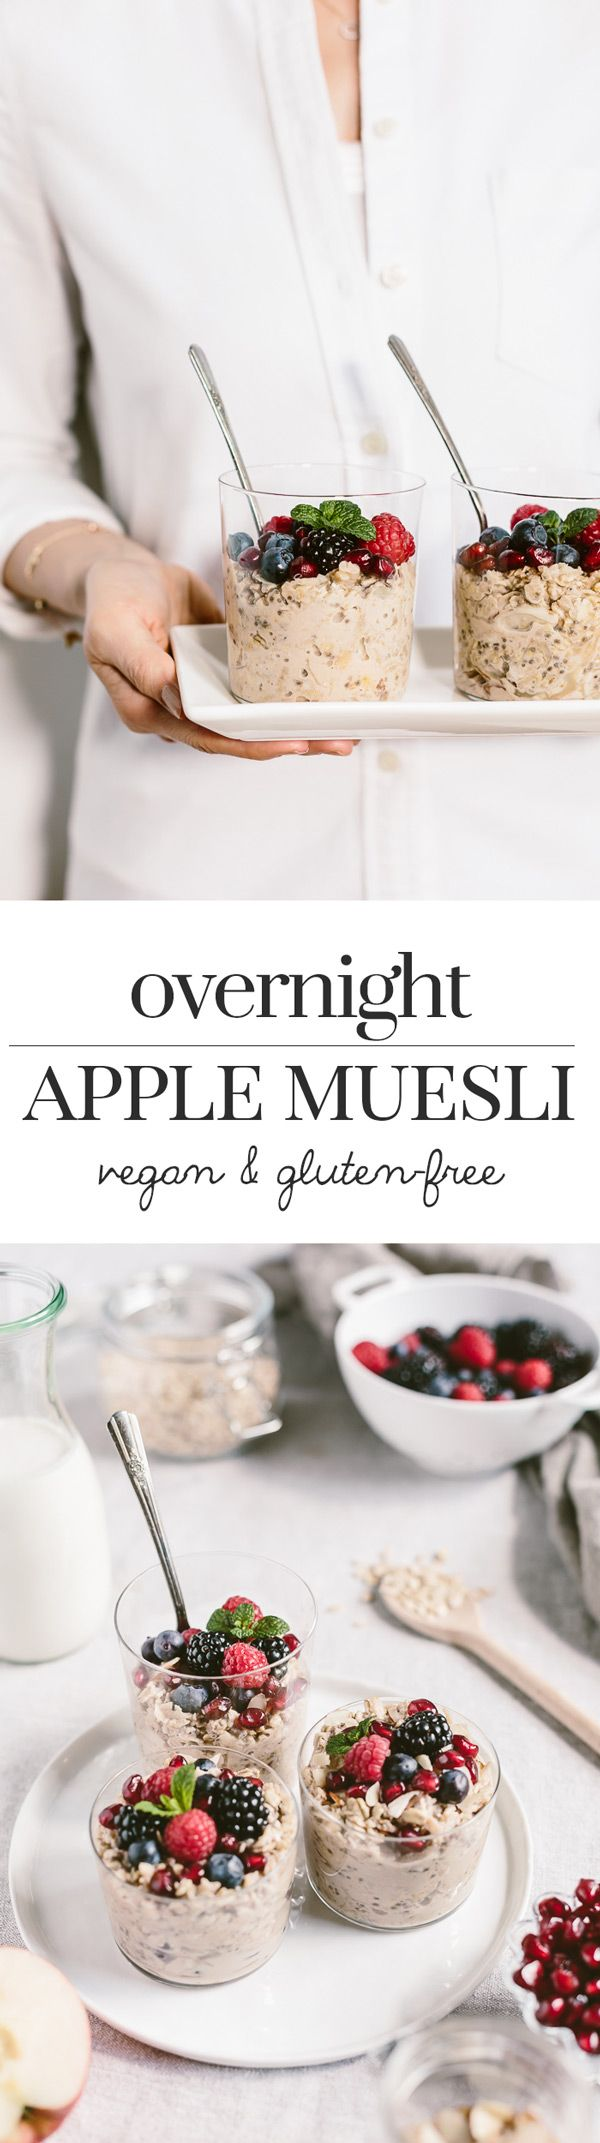 Overnight Apple Muesli - A vegan and gluten-free bircher muesli made with mixing shredded apples, almond milk, and almond yogurt.